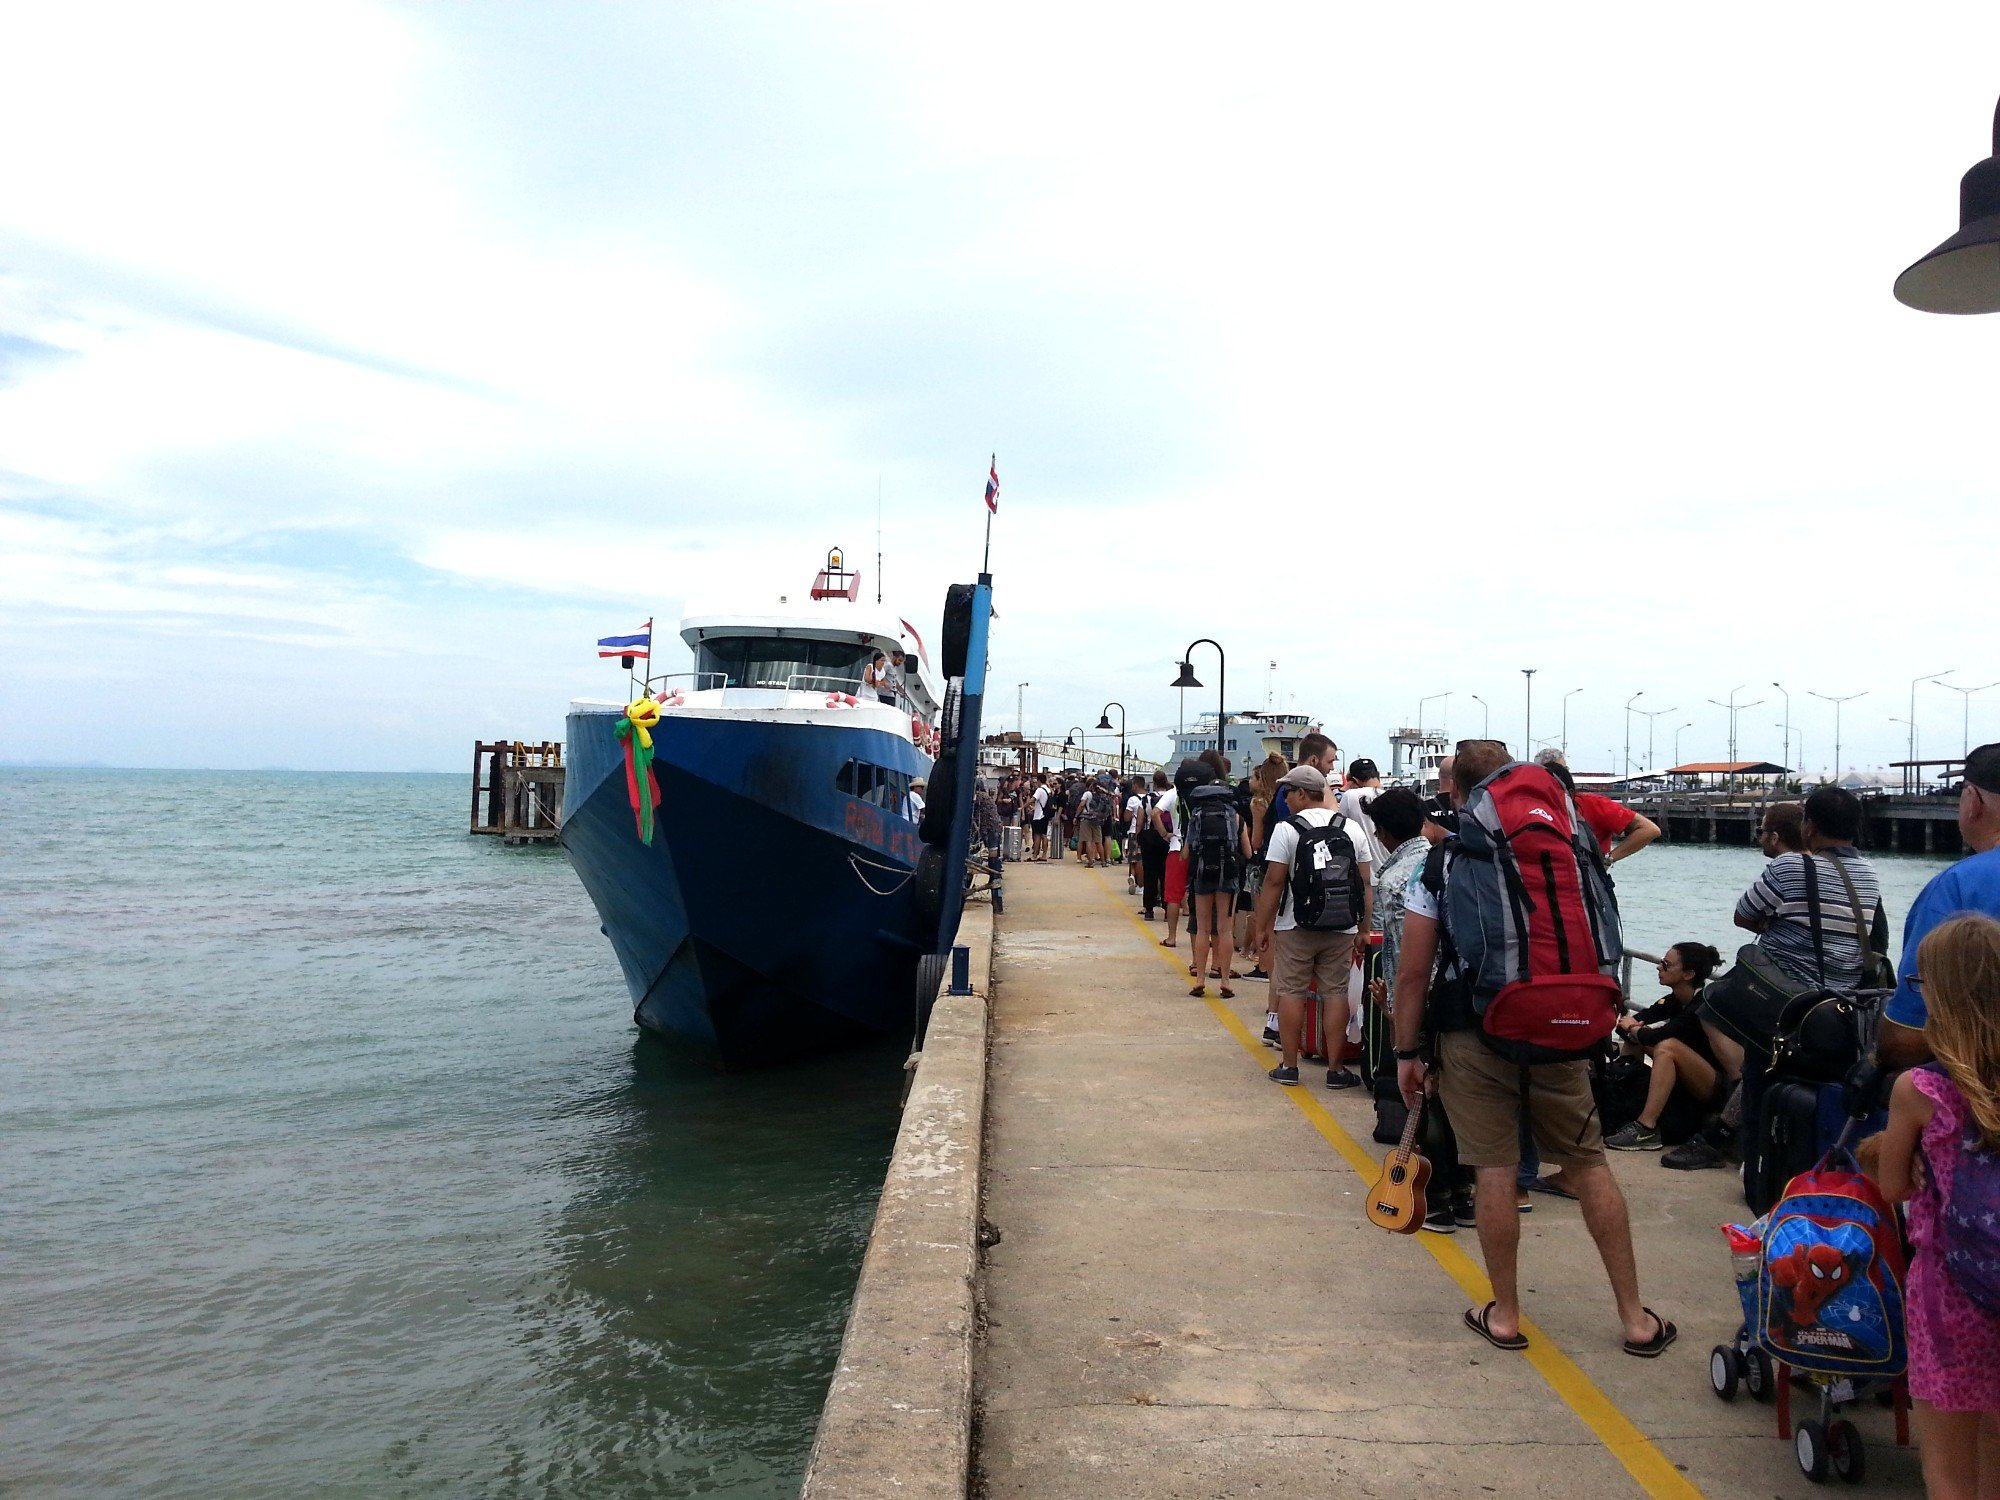 Na Thon Ferry Pier in Koh Samui